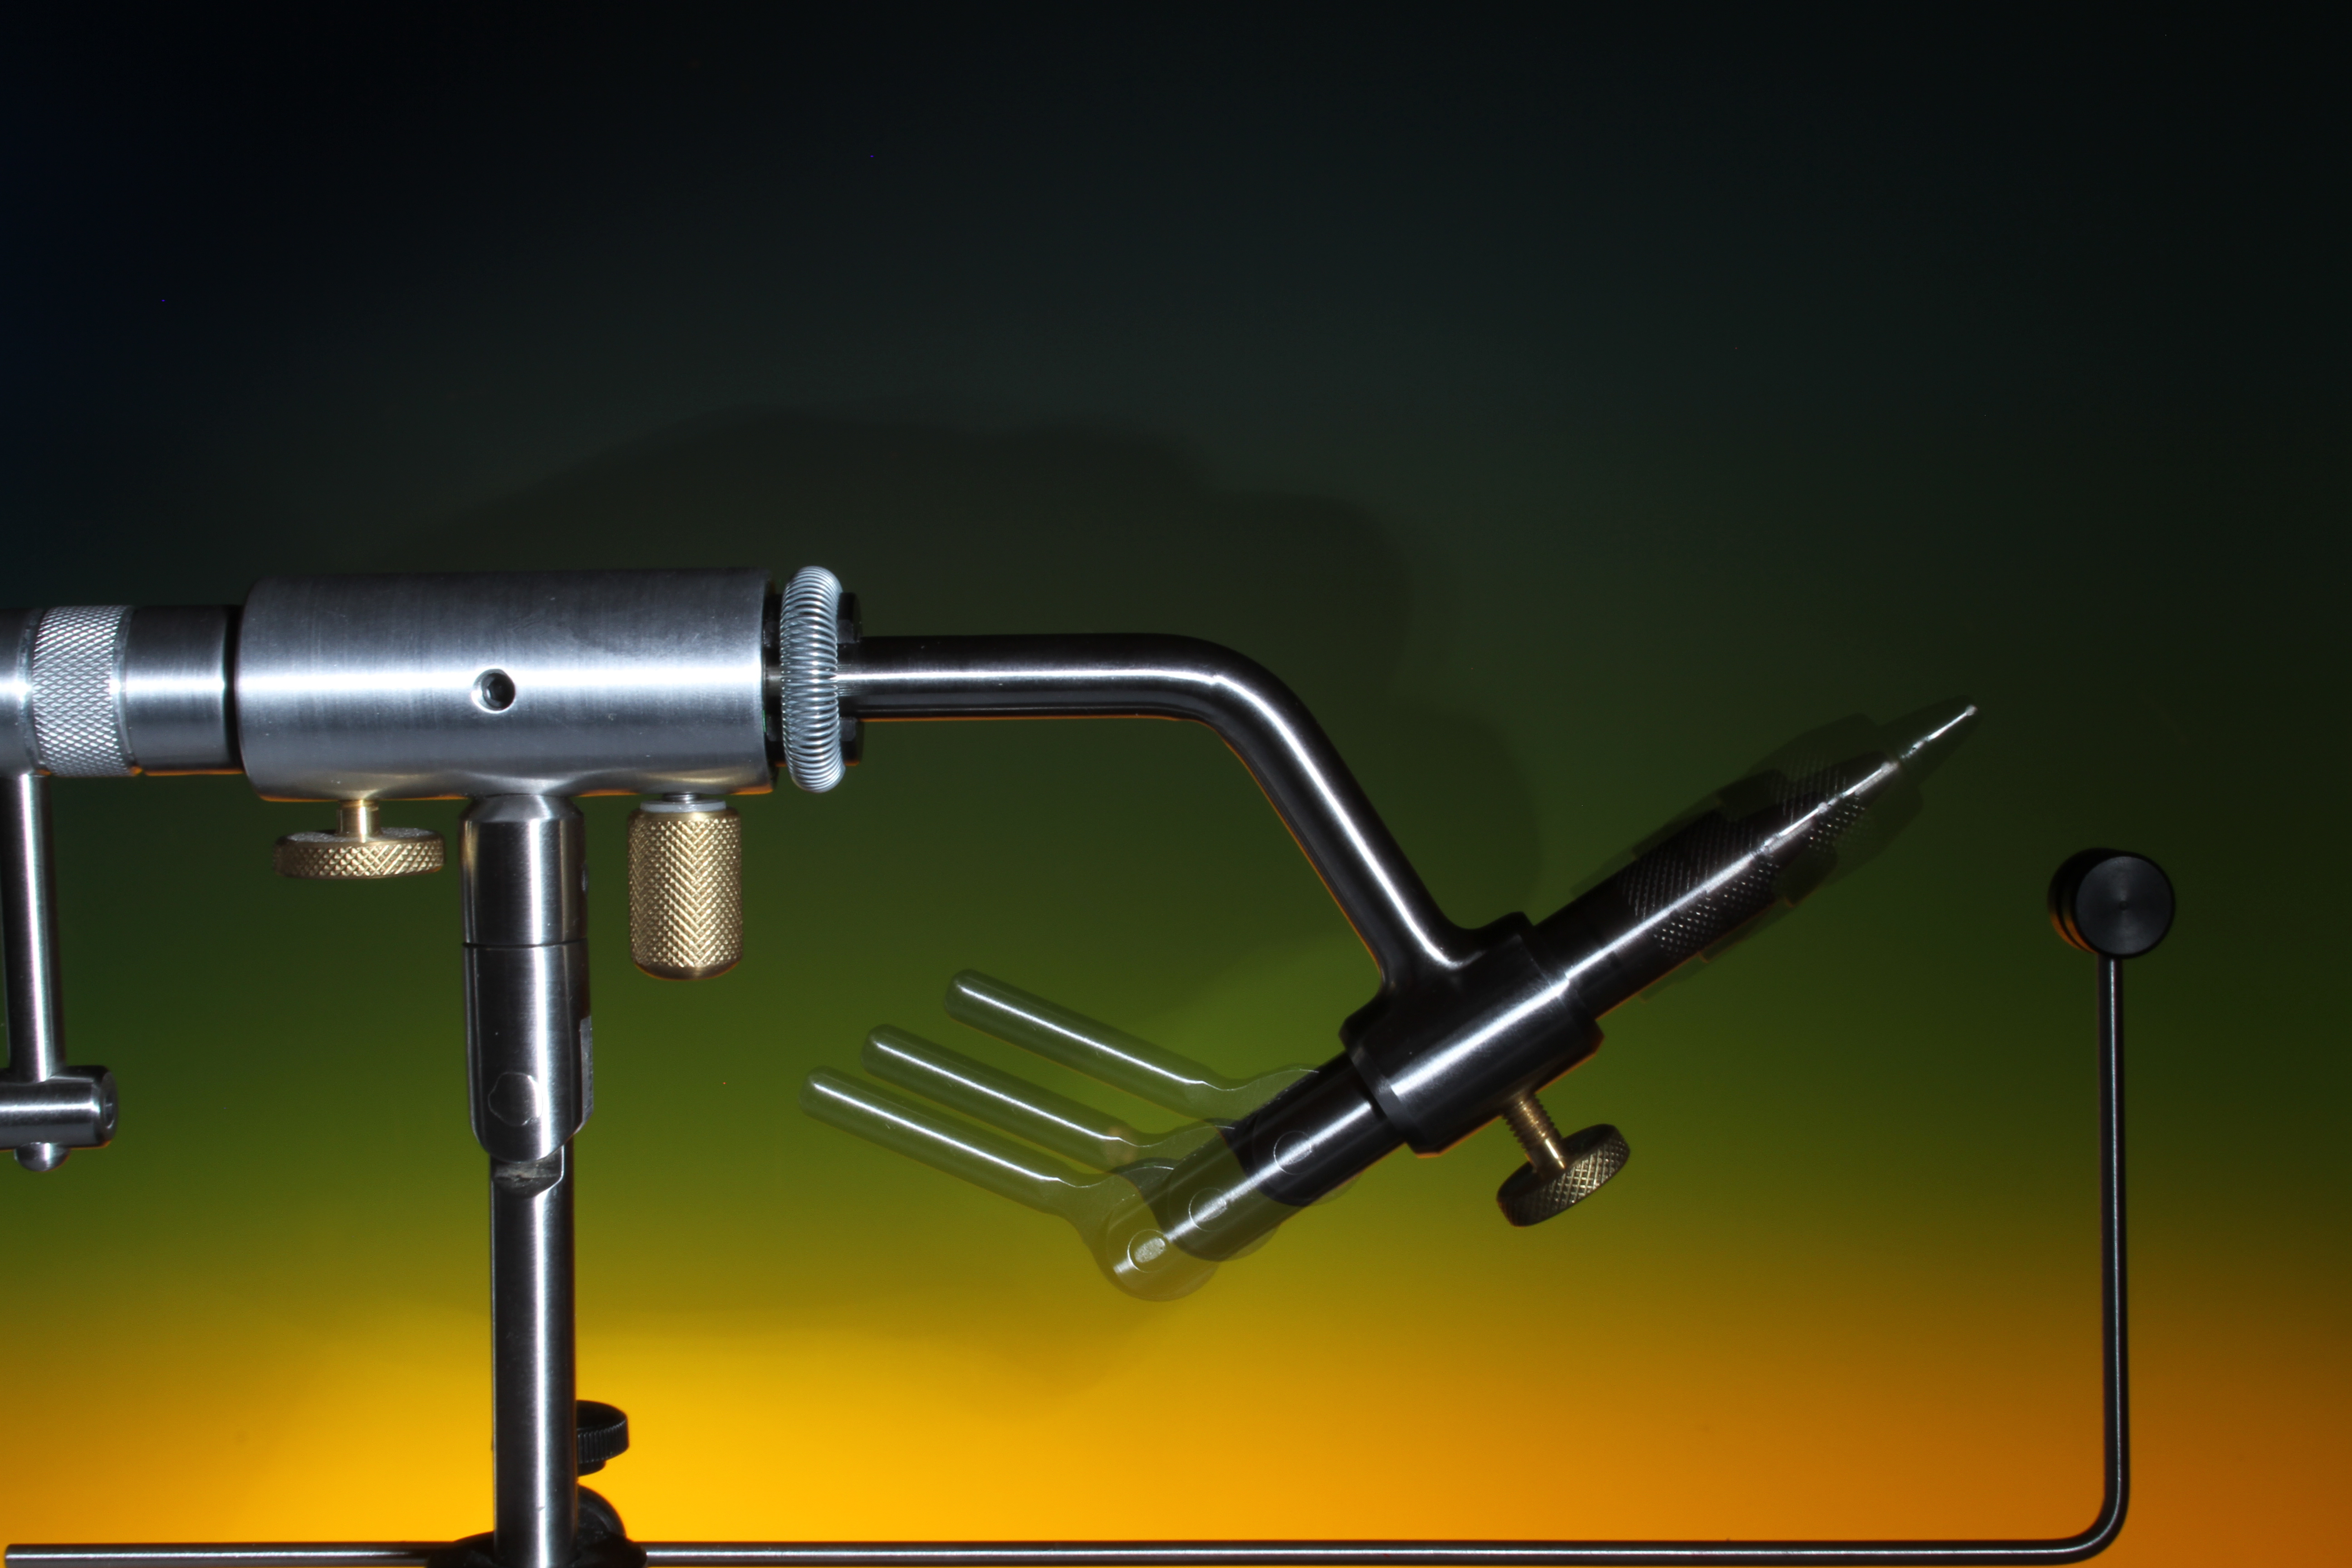 The jaws length can be adjusted by loosening the body friction screw.